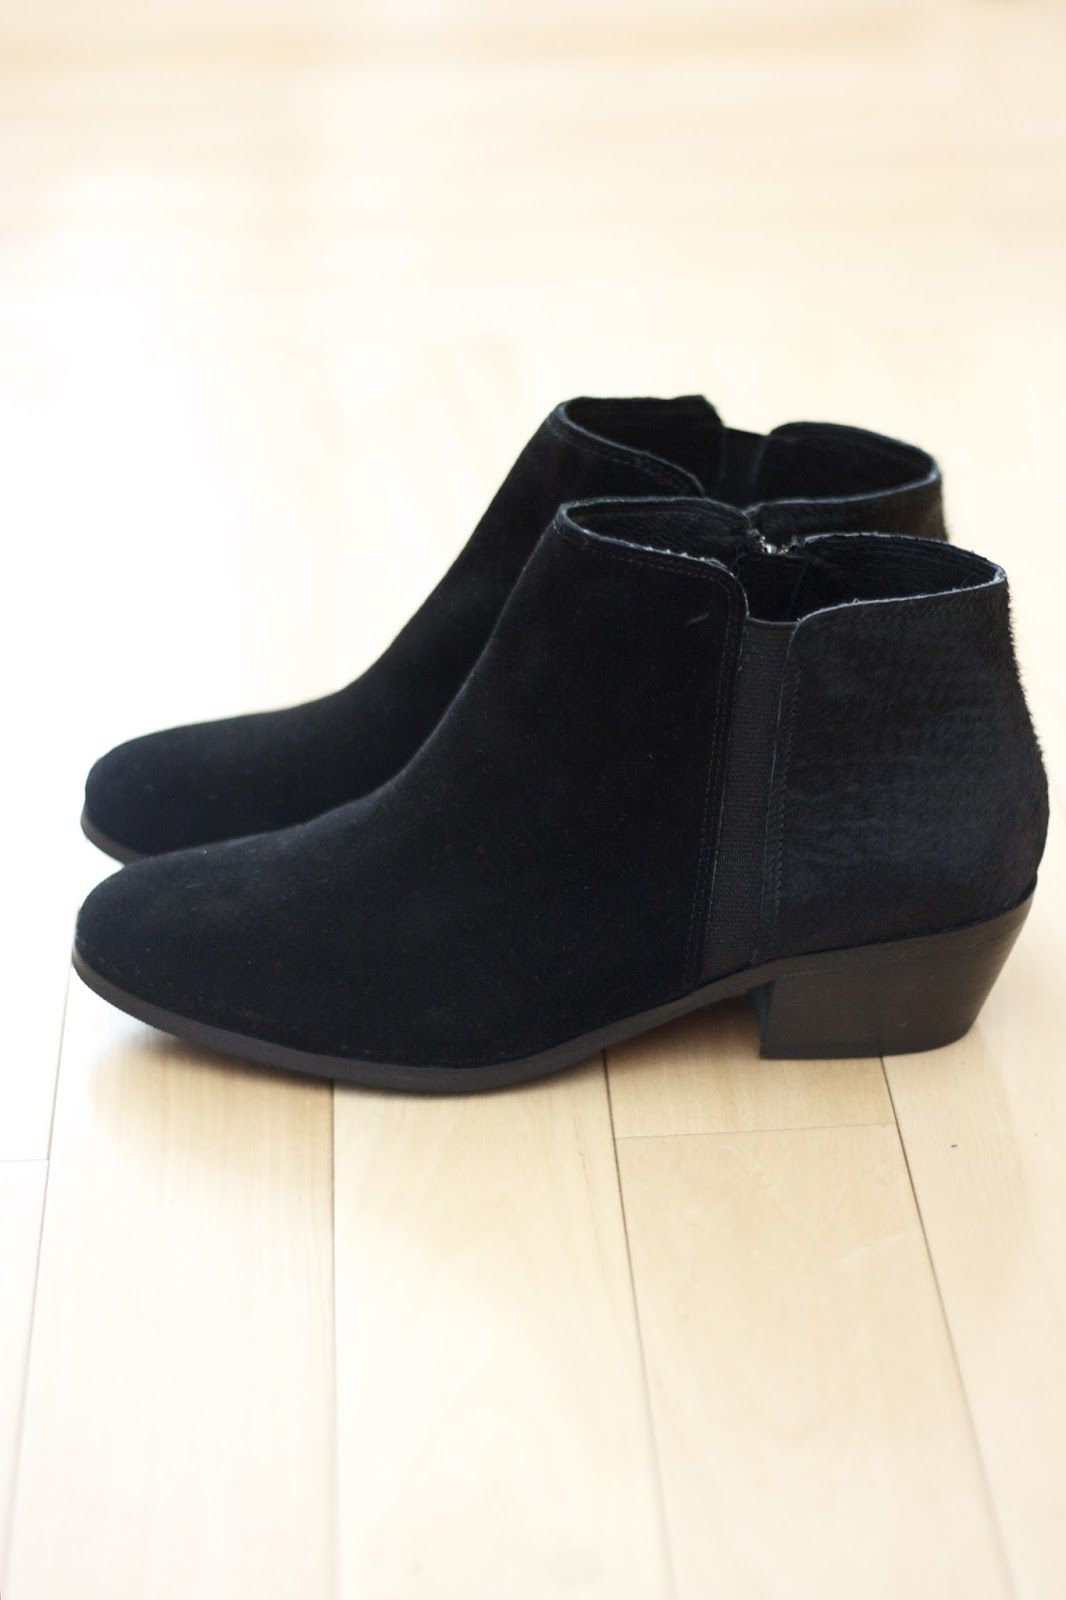 Aldo ankle booties | C&ampC | In My Closet | Pinterest | Ankle boots